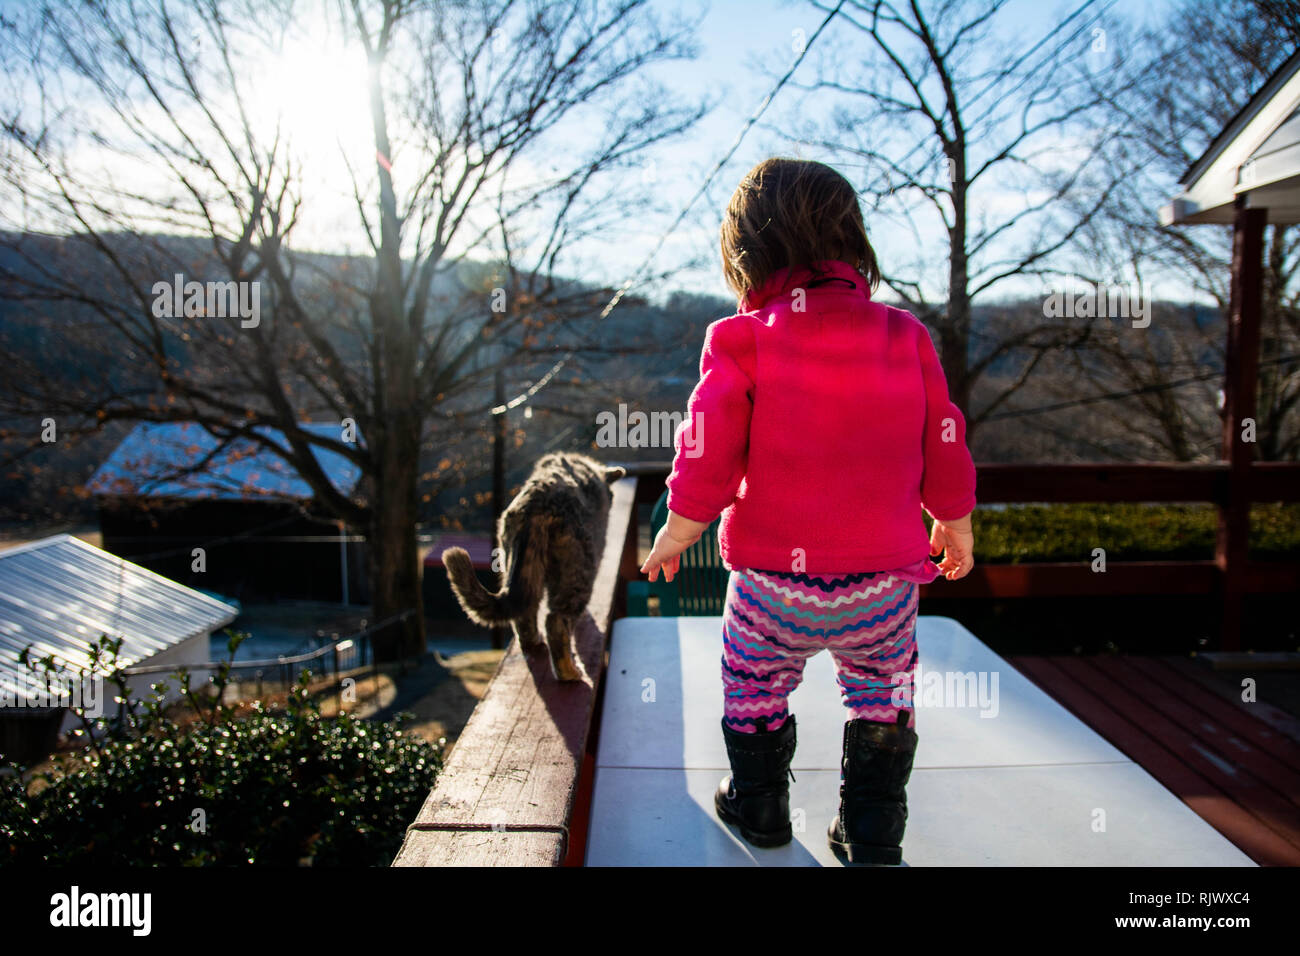 Toddler girl follows a cat while the sun shines on a winter day in Pennsylvania, USA. - Stock Image